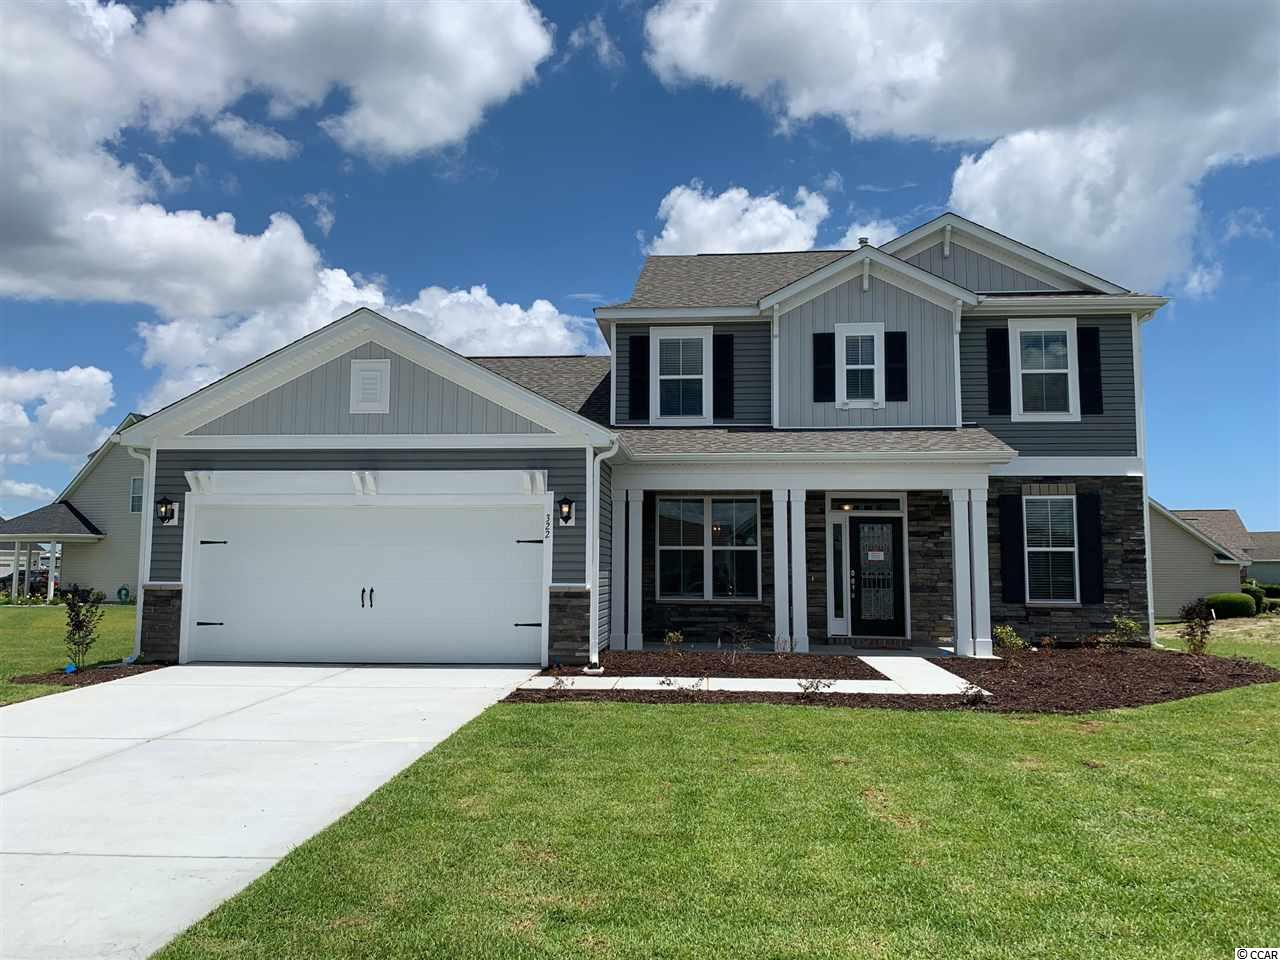 "This lovely Natural Gas ""Millbrook"" home is conveniently located in Belle Mer; the best kept secret on the south-end a few miles from Market Common, between Myrtle Beach and Murrells Inlet.  Belle Mer is located between 17-Business and 17-Bypass, across from South Strand Commons (Kohl's, Lowes, McAllister's Deli), just a bicycle ride to the public beach accesses in Surfside Beach.  This ""Millbrook"" boasts upgraded included features, Energy Star Certification for lower utility costs and a more restful home, an open concept floor plan, and a fresh new design in Belle Mer.  The coastal exterior of this ""Millbrook"" includes a gorgeous decorative glass front door with a sidelight and transom window that leads into a gracious foyer highlighted with natural light, crown molding, chair rail, and picture molding.  The generous open Kitchen features crisp white Level 3 Coastal Shaker style Kitchen cabinets, a ""Light Gray Glossy"" Virtuvian - Subway tile backsplash, White Attica Level 3 Quartz kitchen counter tops, and an Island with 3 Staunton pendant lights that also add to the Coastal flair.  Stainless Steel Whirlpool Kitchen appliances (dishwasher, 5-Burner Gas range with double oven, French style refrigerator, and over-the-range microwave) and a breakfast area.  The spacious owner's suite is luxuriously comfortable with a tray ceiling, Mohawk REV Wood flooring, and a tiled walk-in spa shower.  All living areas of this home include easy-maintenance Mohawk REV Wood flooring.  All baths and the laundry room include tile flooring.  This ""Millbrook"" offers a formal dining room or flex room for a study or den, 2.5 baths, 3 bedrooms upstairs, and the owner's suite downstairs.  The great room ceiling is open to the 2nd floor creating an incredible WOW factor when you enter this spacious, well appointed, easy-living, low maintenance home.  The Belle Mer community includes amenities galore: pool, clubhouse, exercise room, sidewalks, and fishing-canoeing lakes.  This home is ready now!  Start living the ""beach life"" today!"